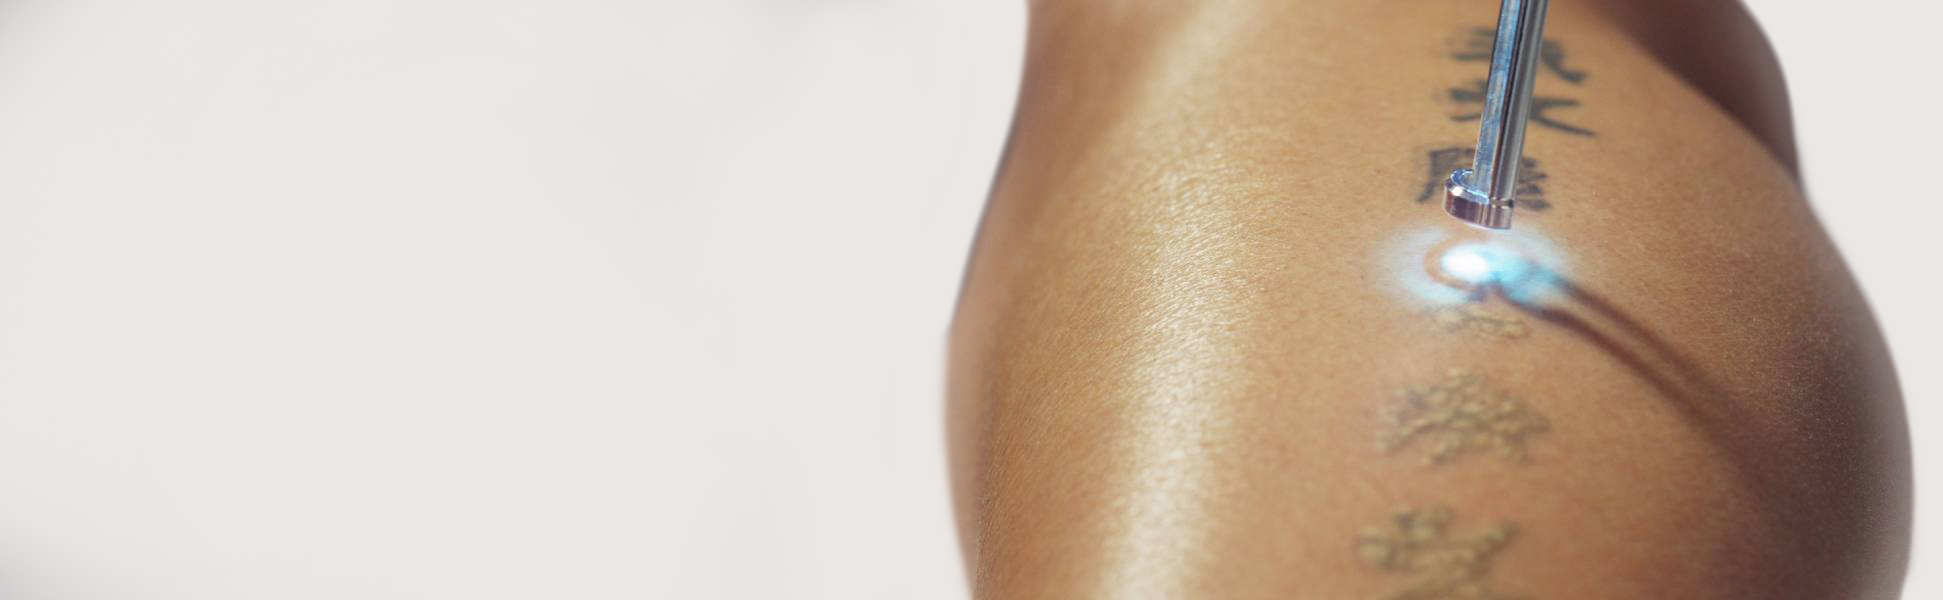 Tattoo Removal Treatment in Bangalore